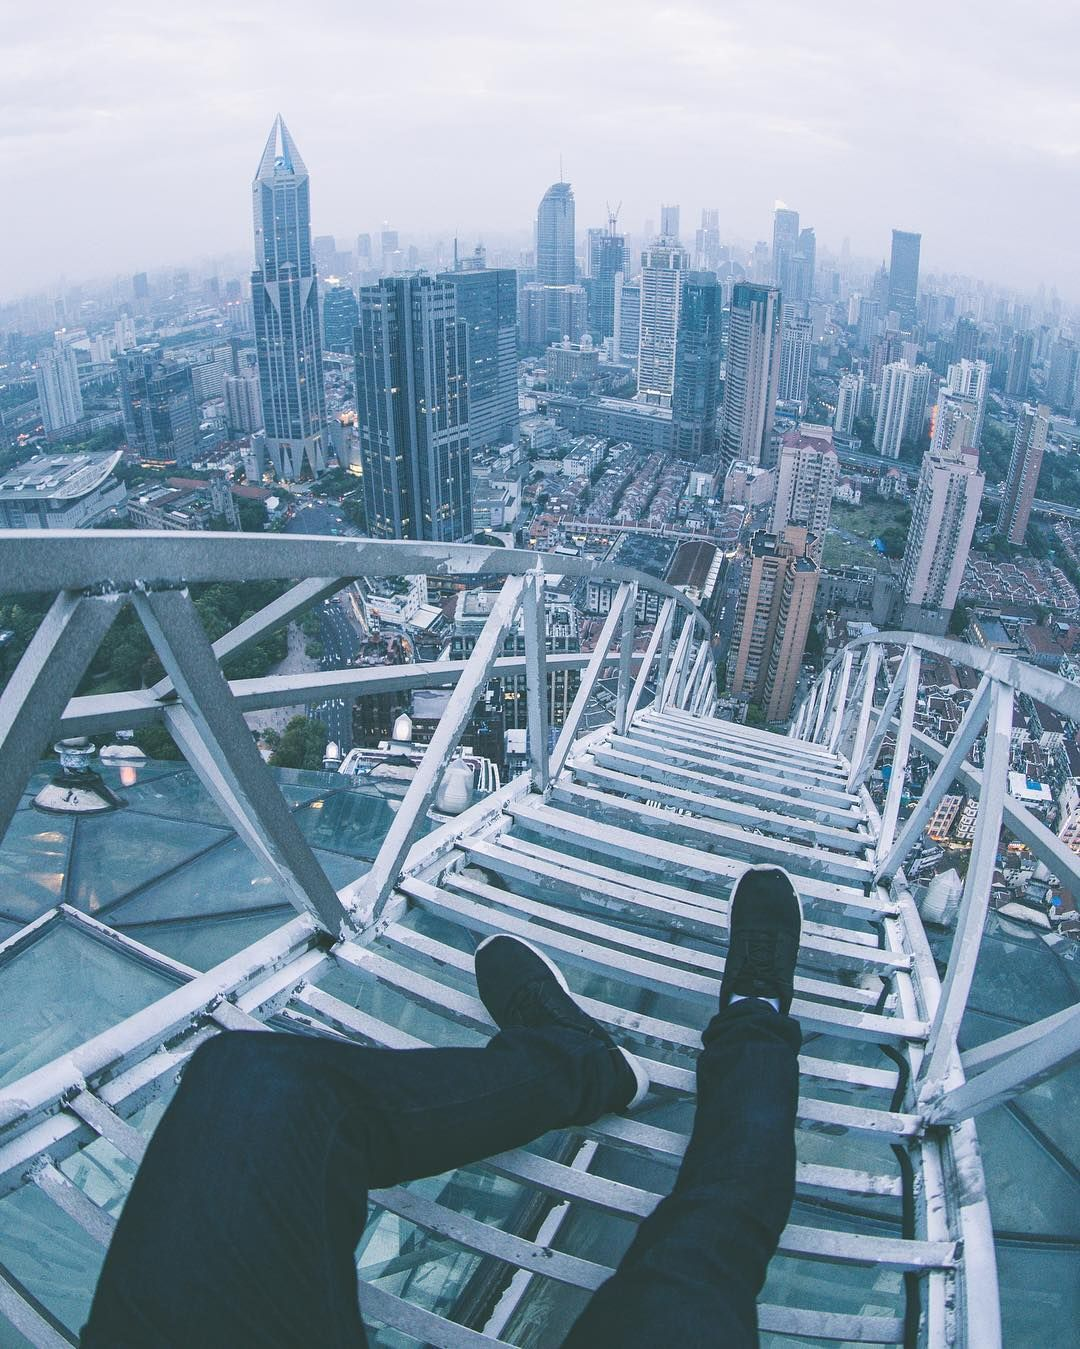 Stunning Rooftop Shots From Skyscrapers Of Shanghai By Oliver Shou - Epic photos taken from the rooftops offer a new perspective of london